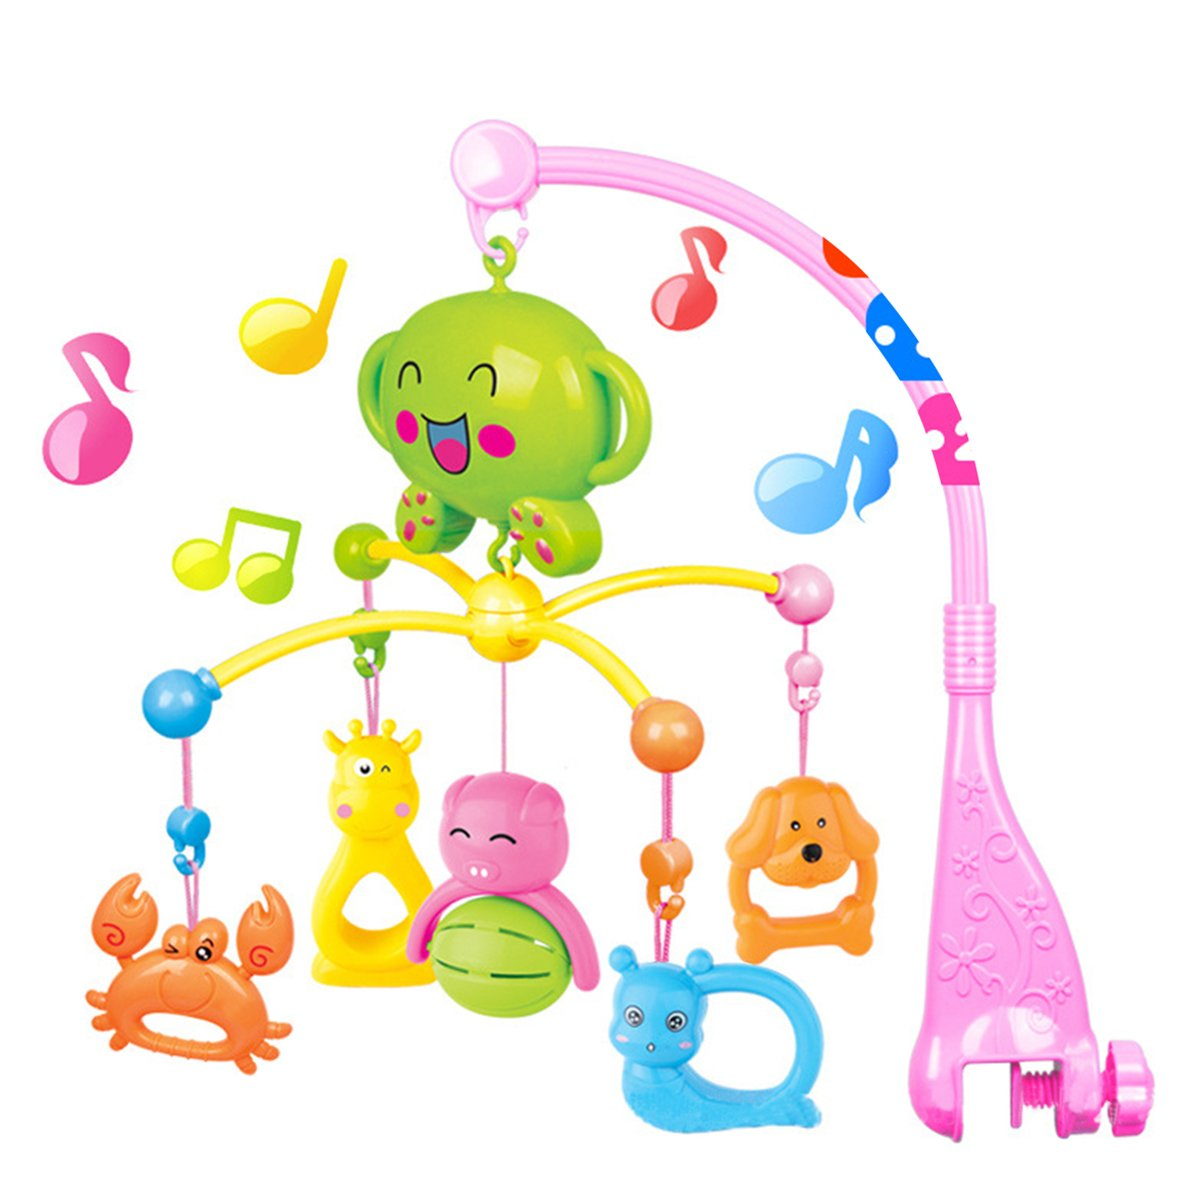 COLOOM Baby Musical Crib Mobiles Toys Infant Rattles Baby Bed Bell Toys with Hanging Rotating Cute Colorful Animals, 20 Melodies (Pink)